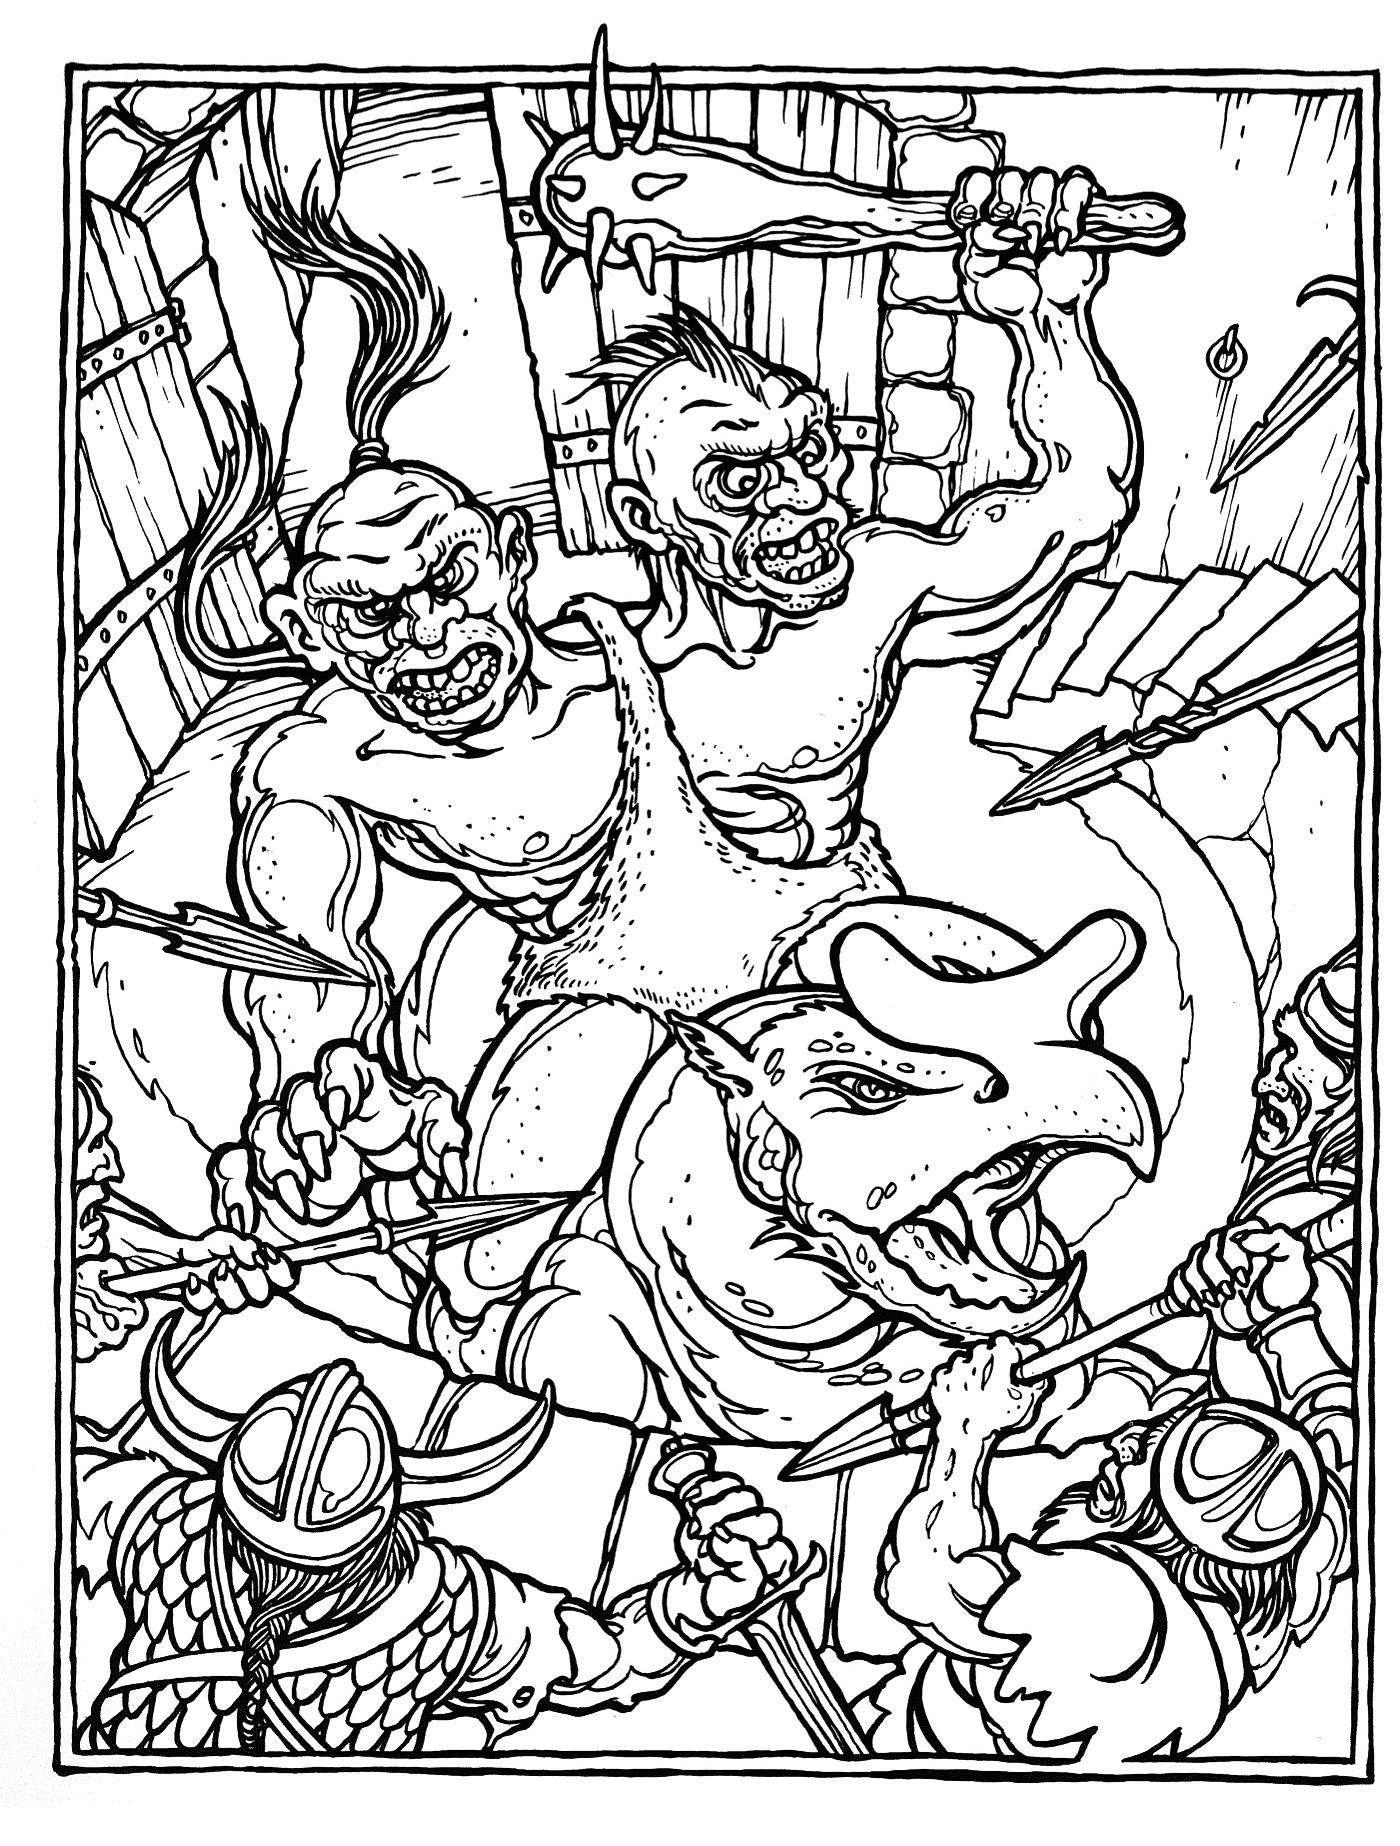 dungeons and dragons coloring pages - photo #5